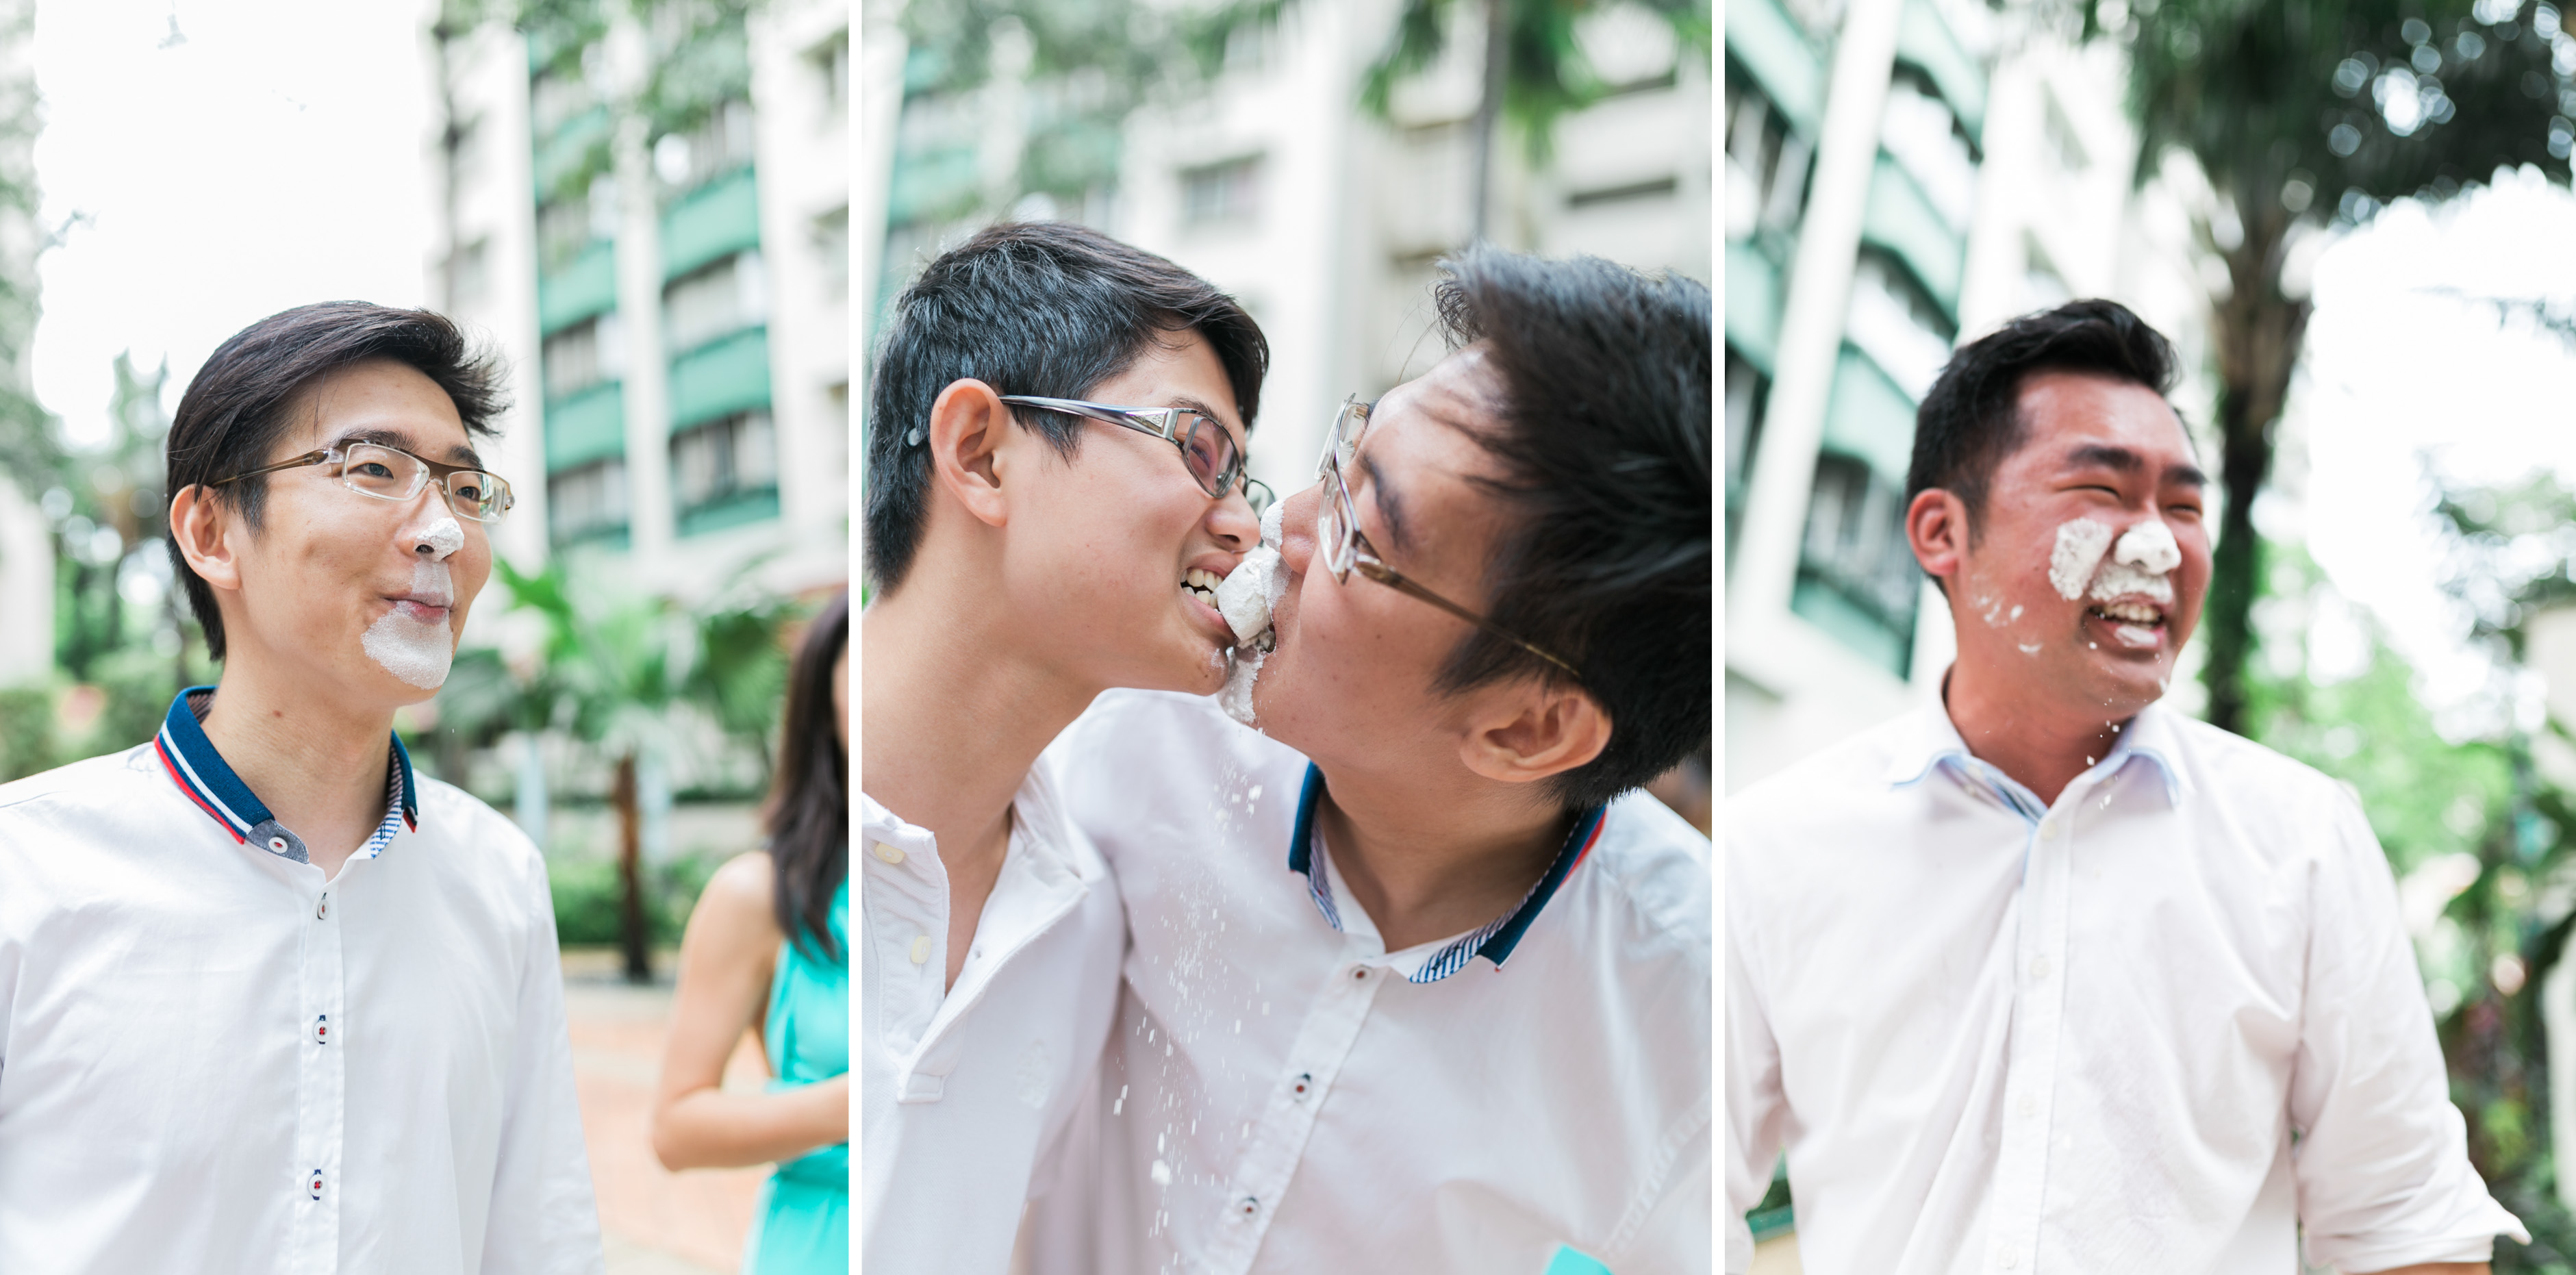 38-hellojanelee-malaysia-wedding-photographer-lake-garden-tinajackson-prewedding